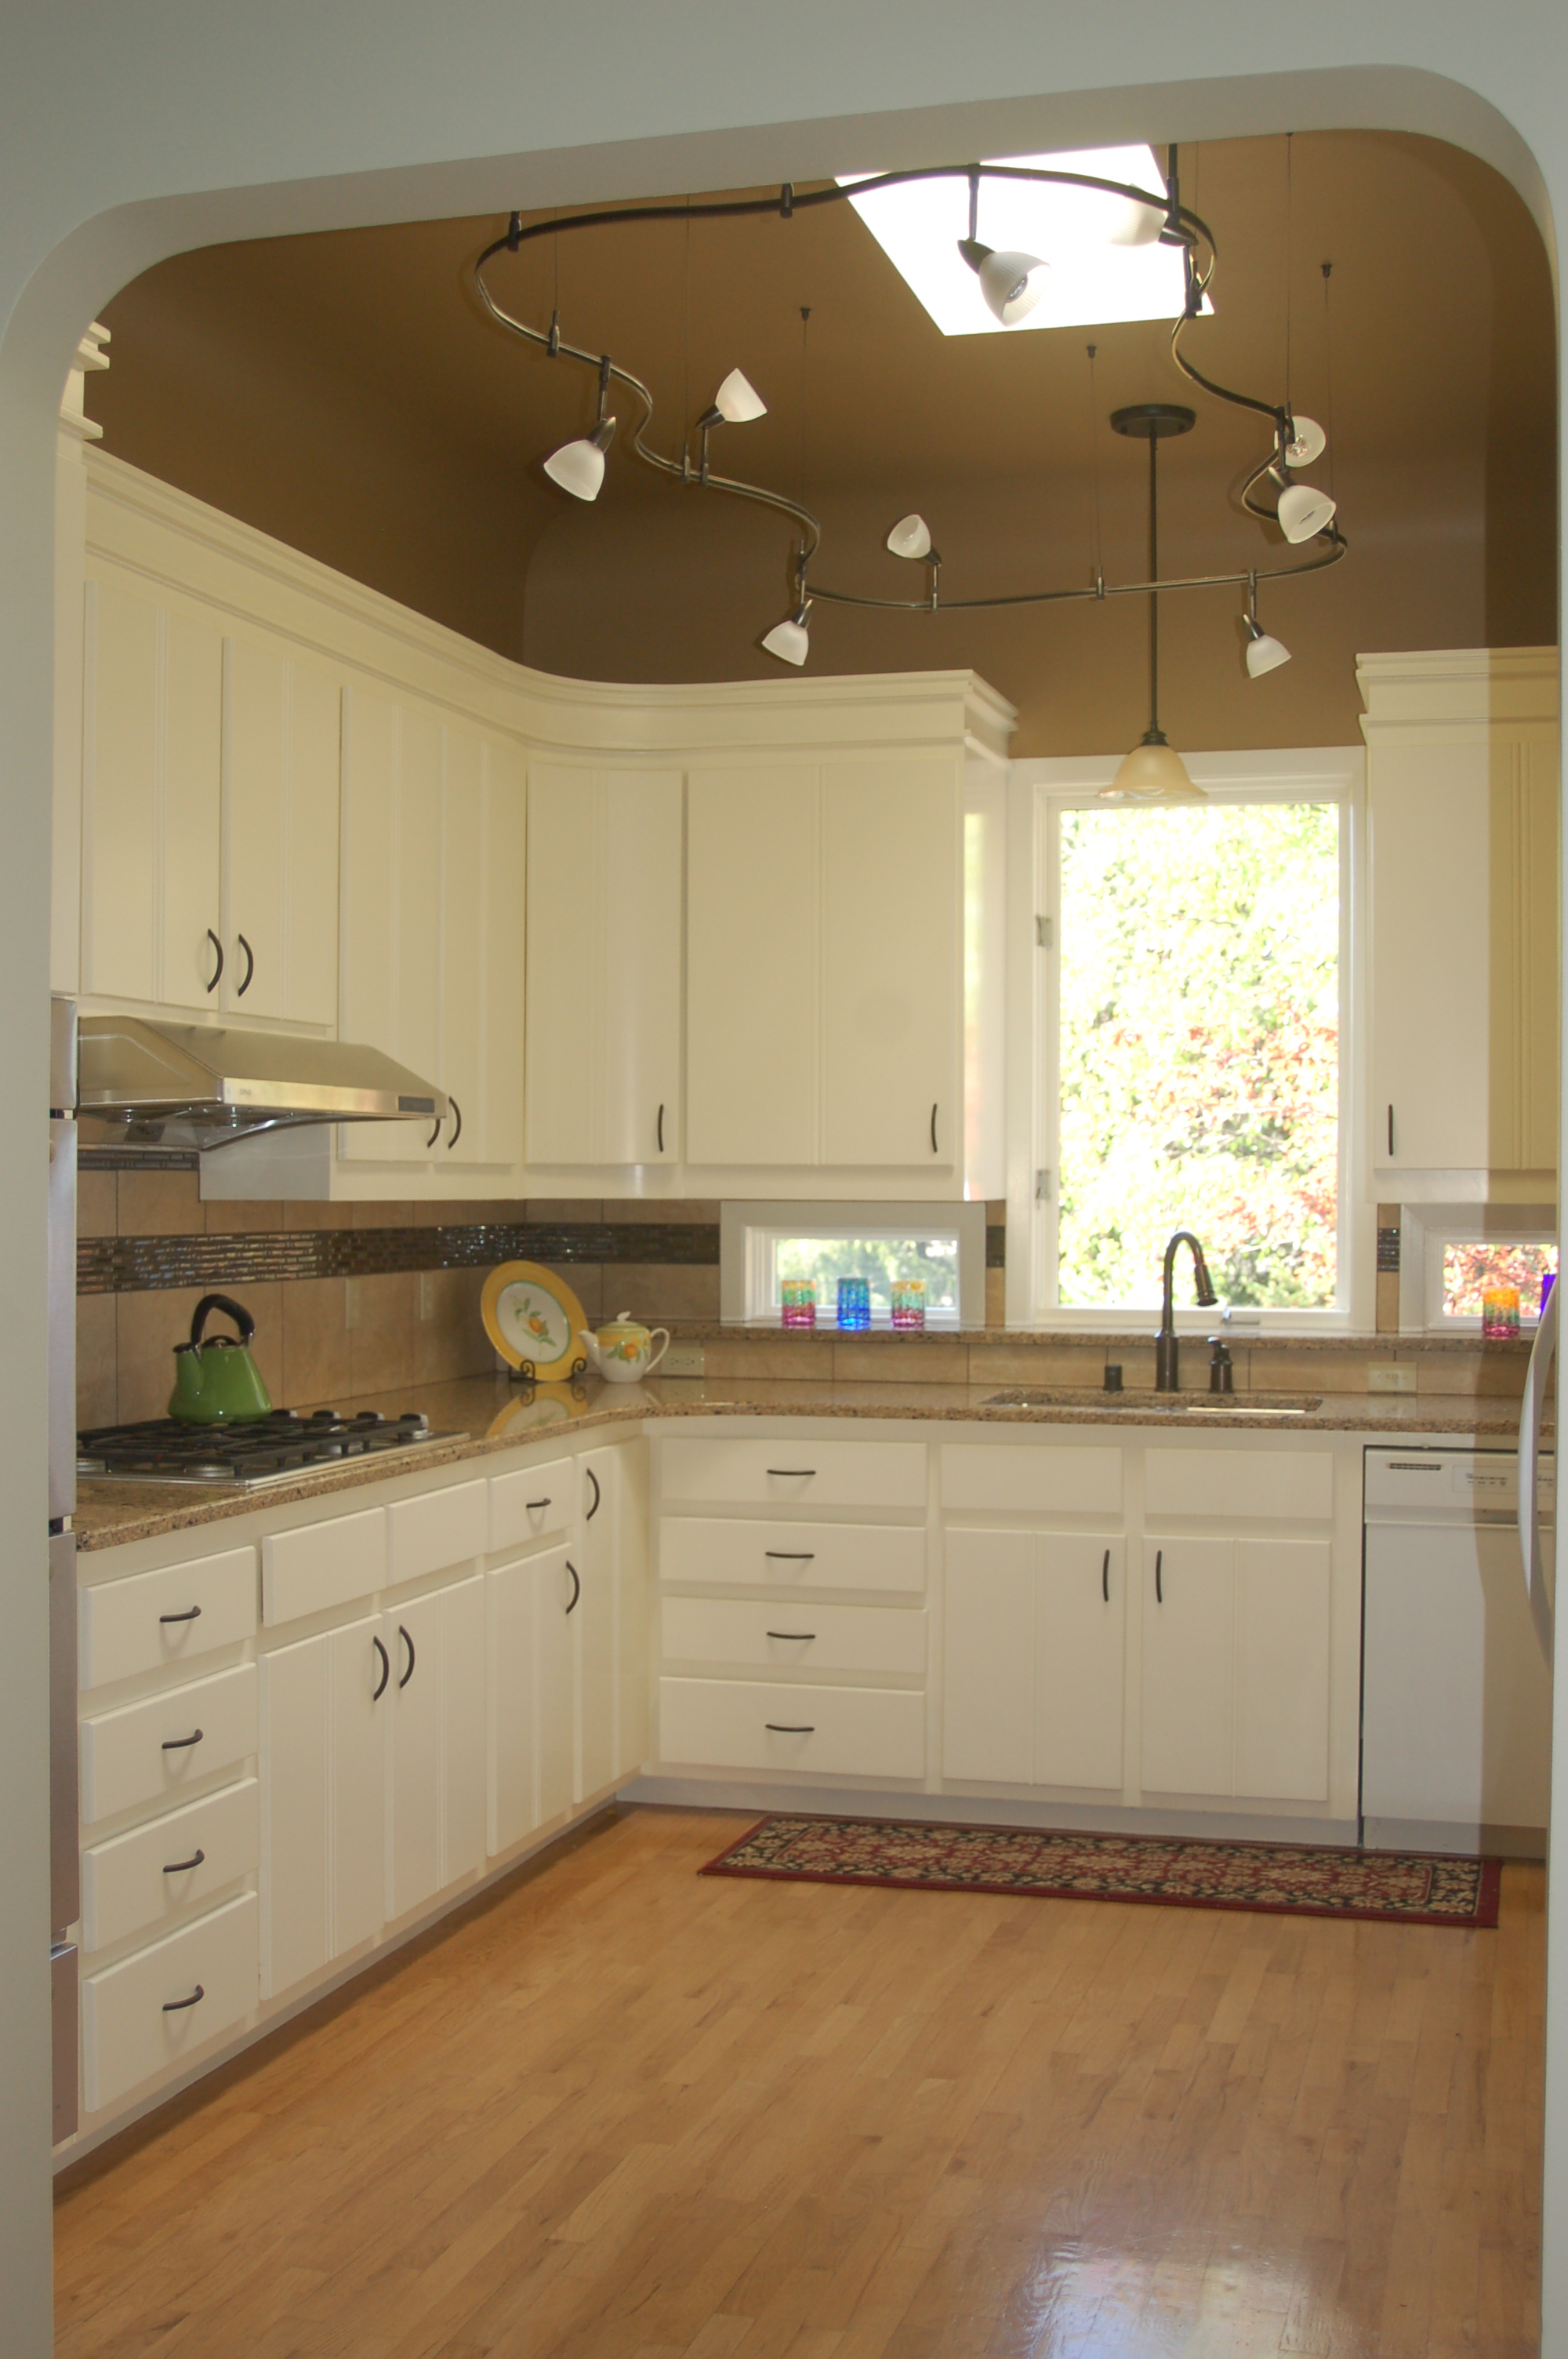 kitchen design with the details in mind kitchen light Image Kitchen light